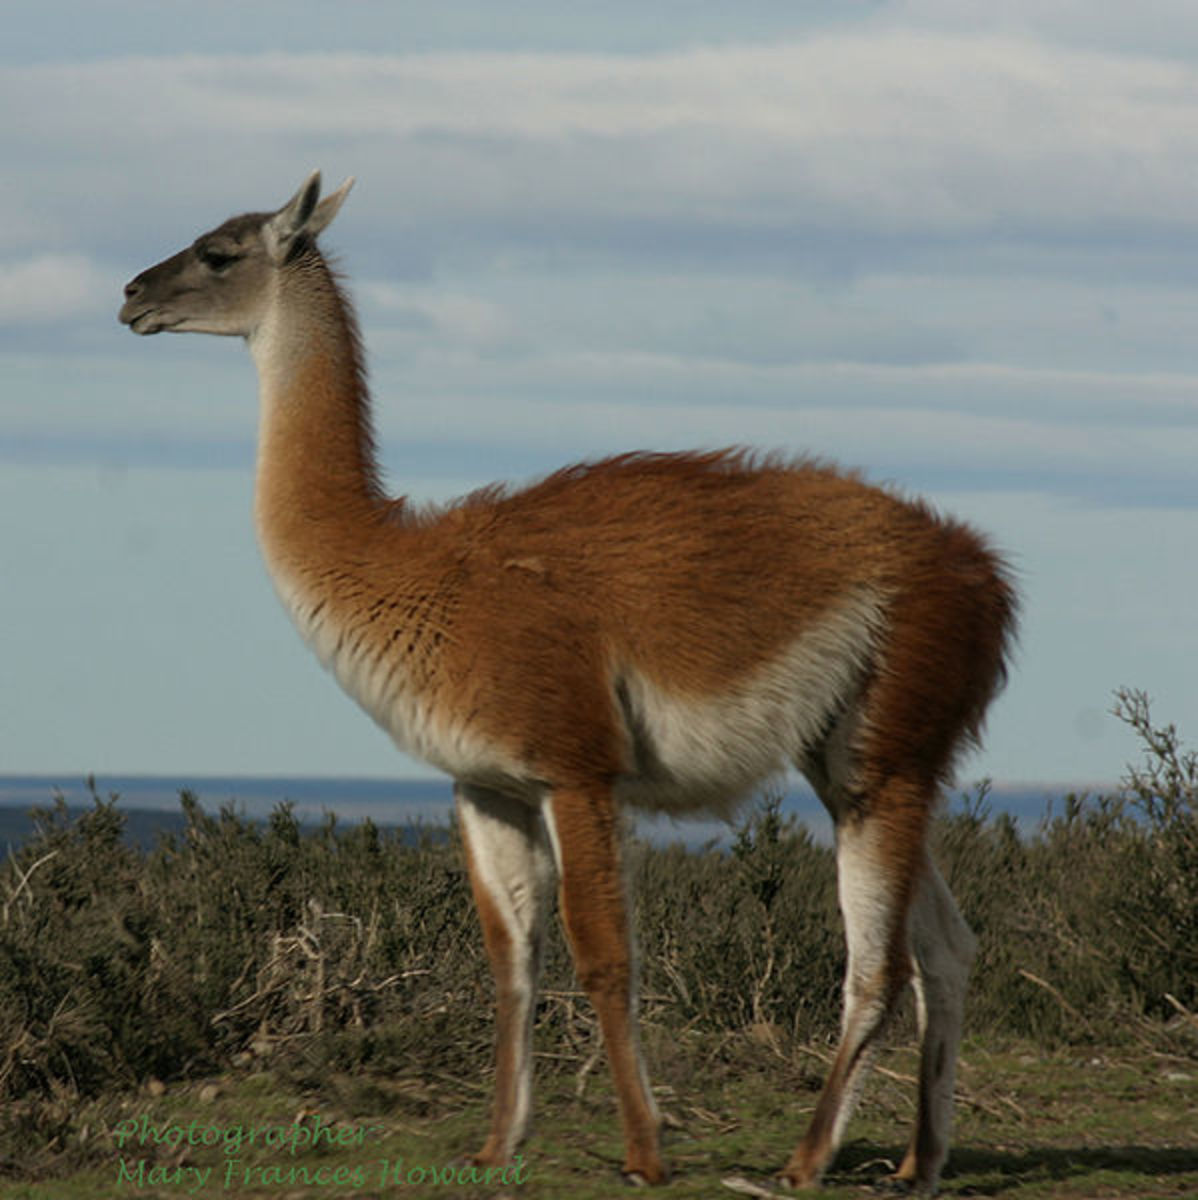 The guanaco is the ancestor of the domestic llama and a close relative of the camels. Its the last camelid living wild in the Americas today.